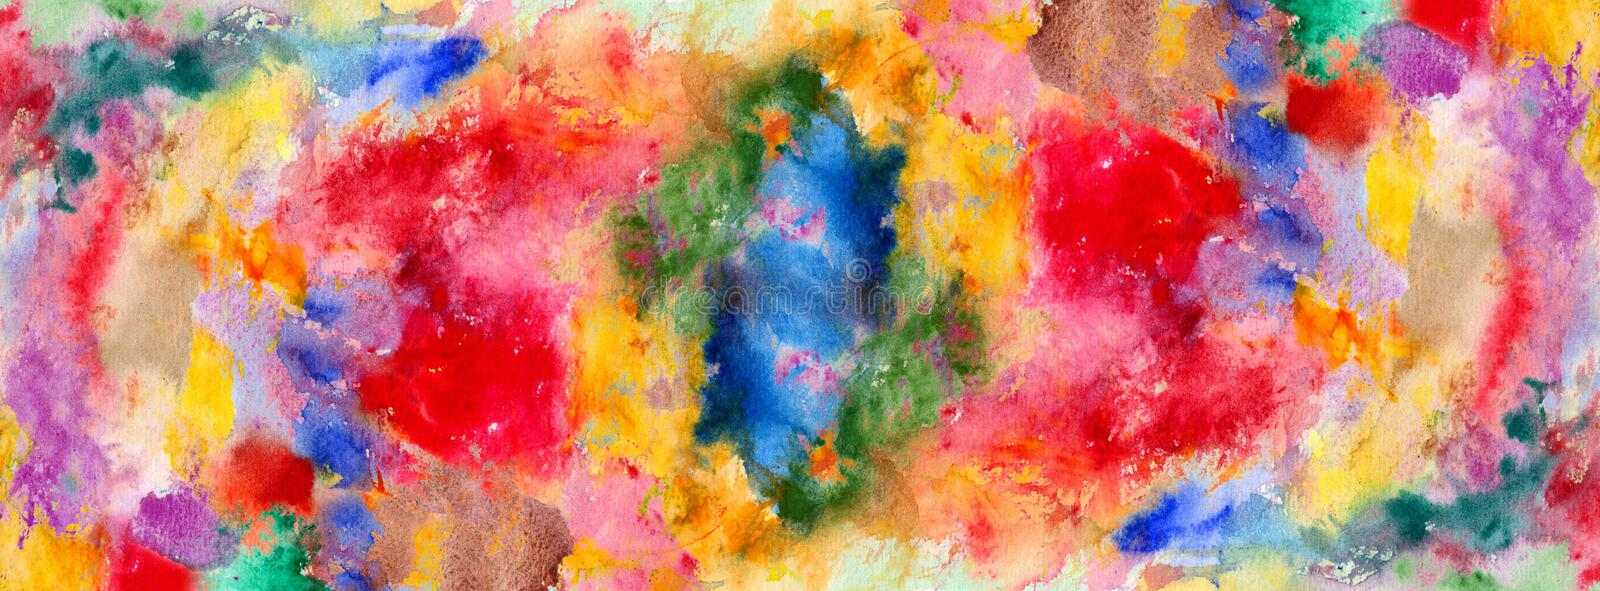 Watercolor color stains and brush strokes. Detail royalty free illustration